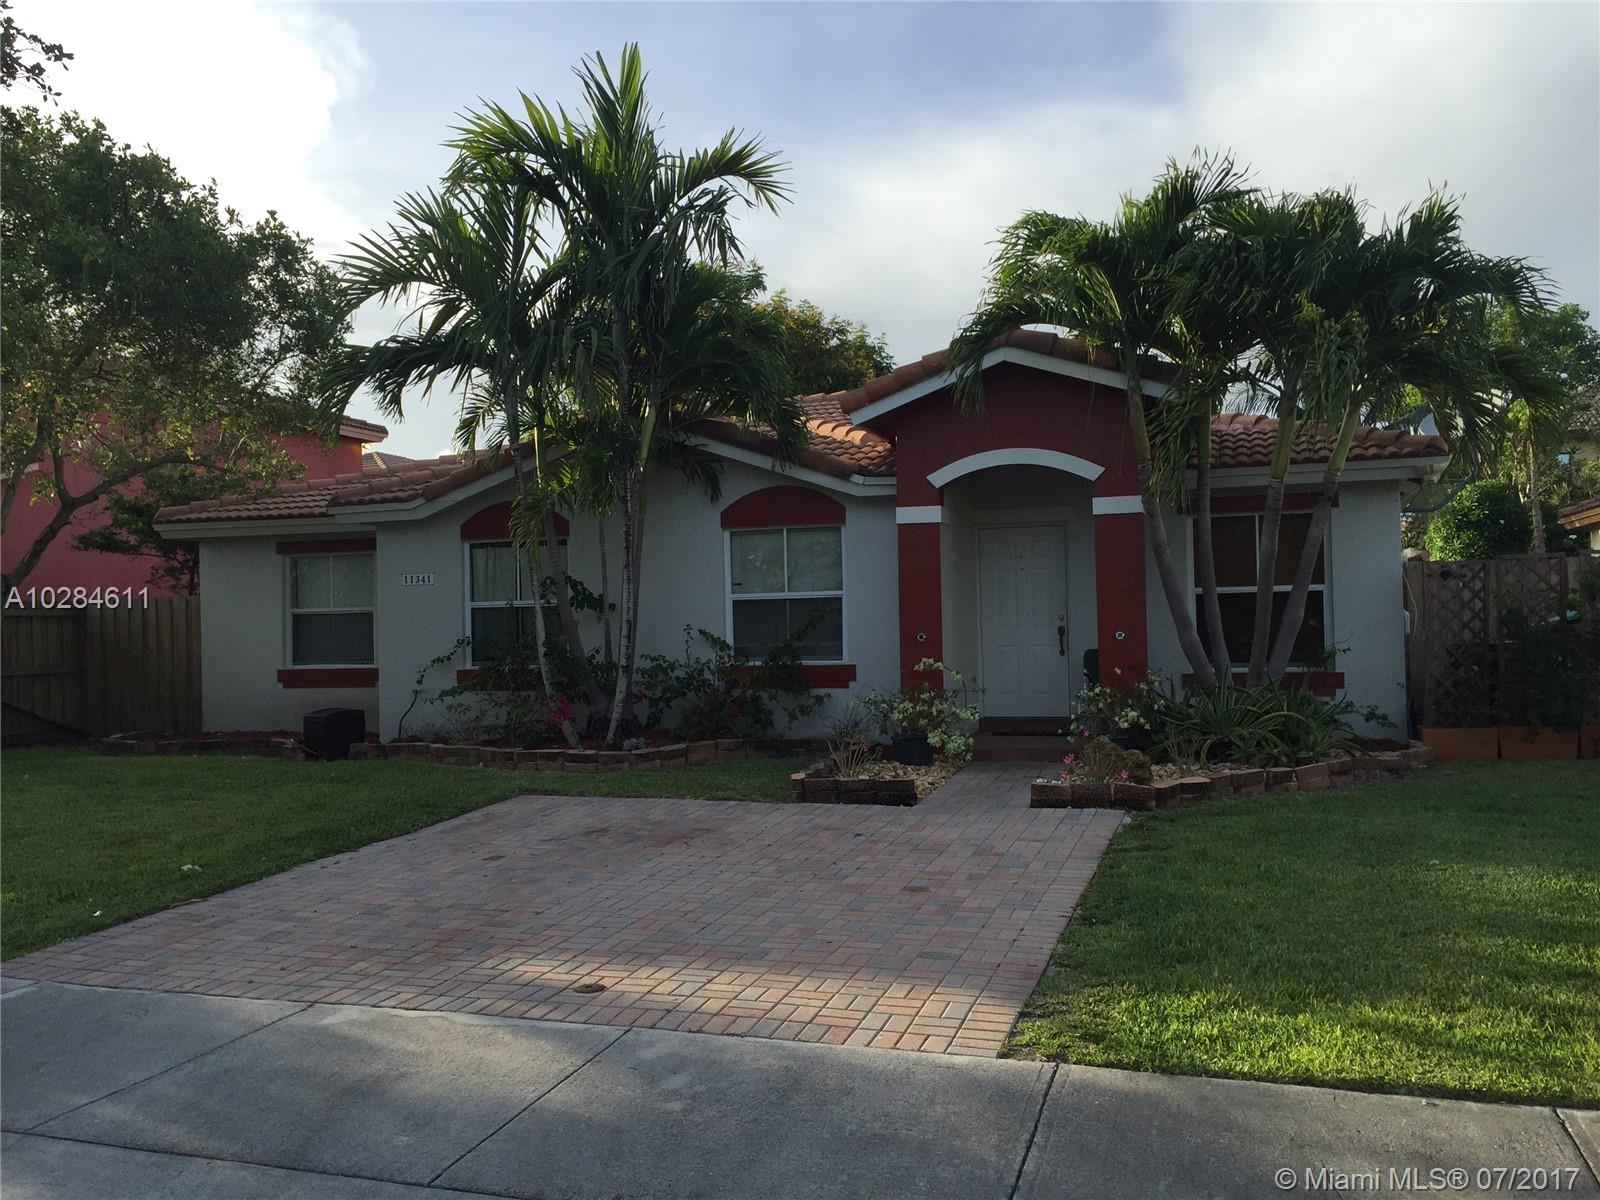 Very nicely kept and updated home in highly sought after Coconut Palm area